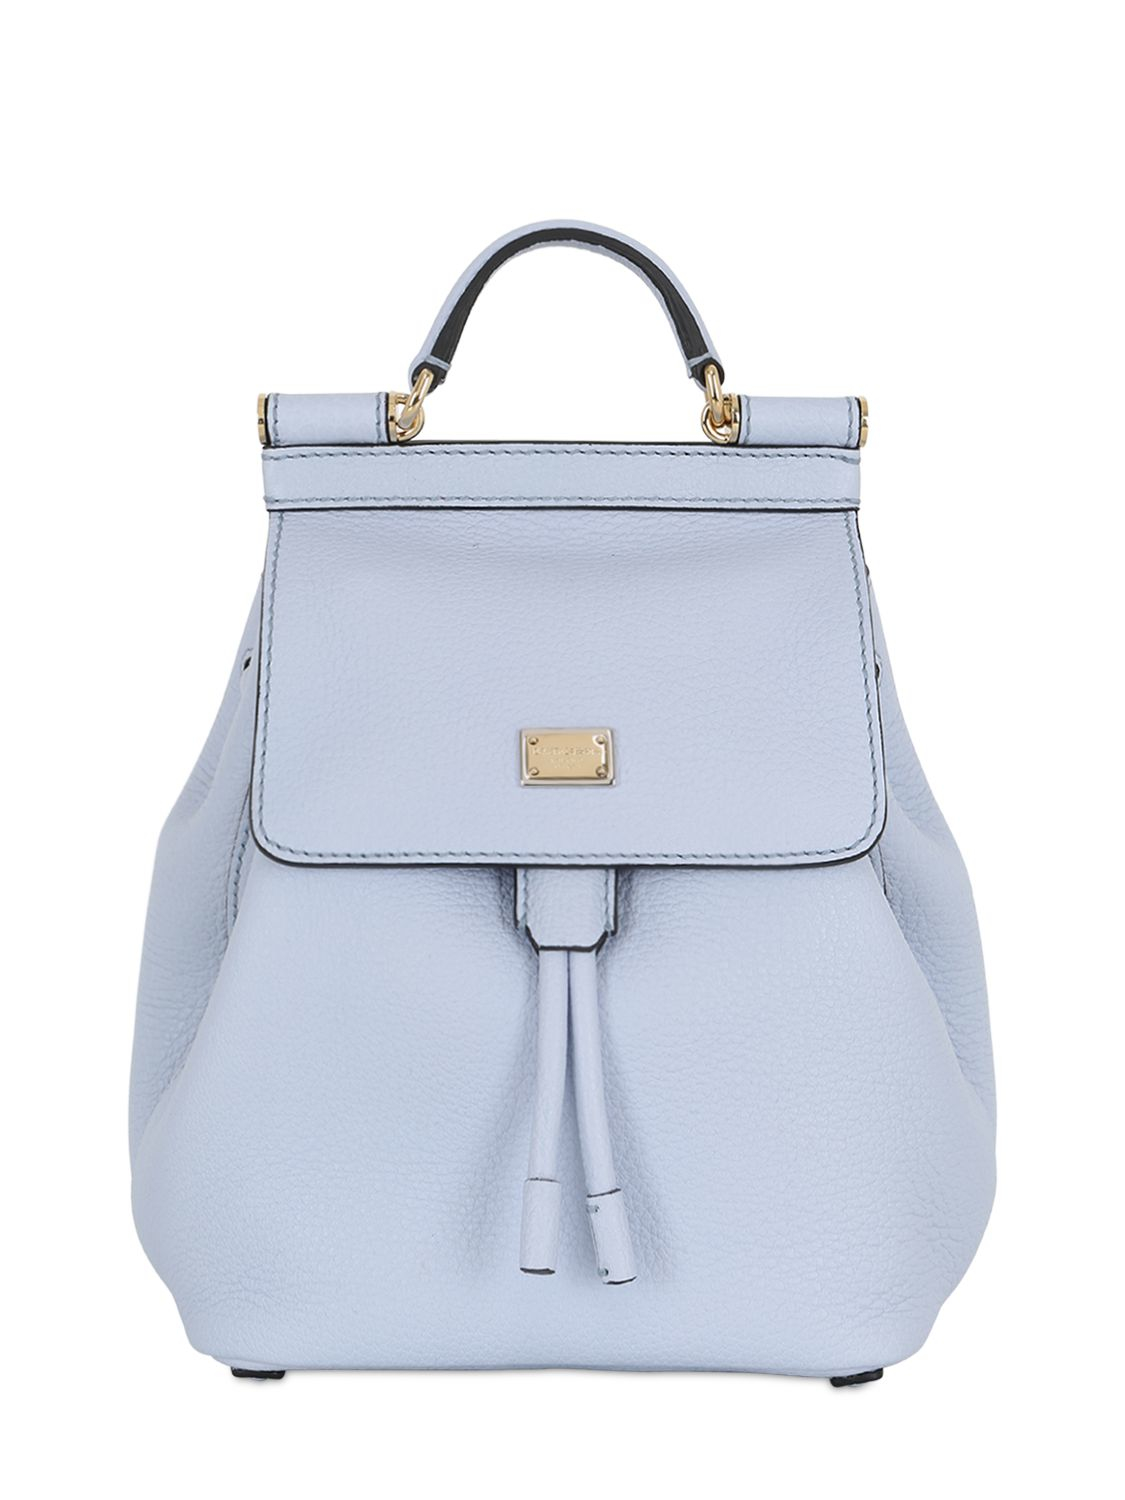 dolce gabbana sicily grained leather mini backpack in